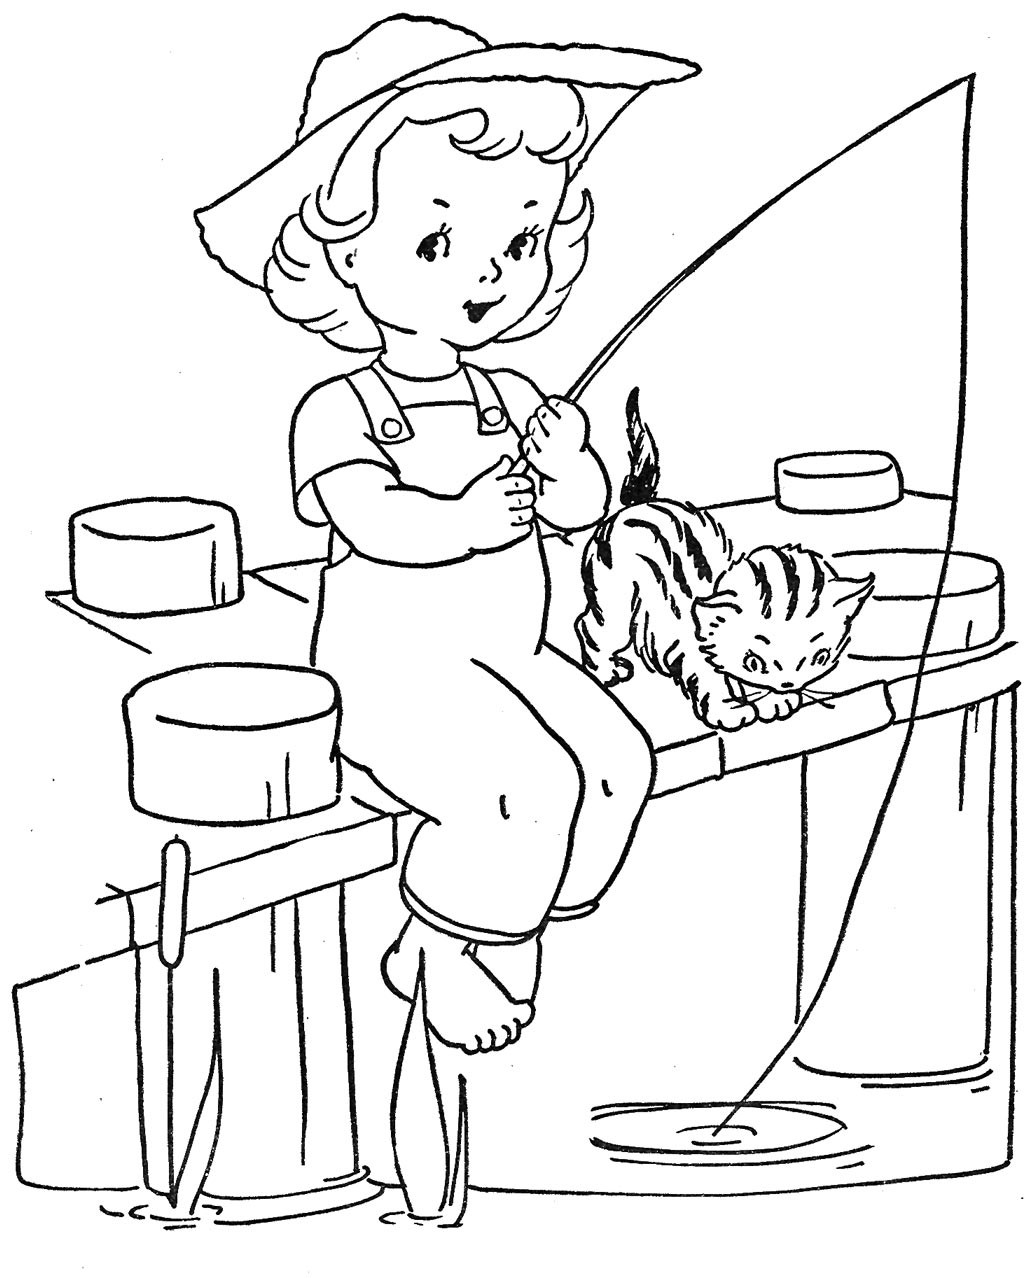 Best ideas about Fishing Printable Coloring Pages . Save or Pin Fishing Coloring Pages Best Coloring Pages For Kids Now.